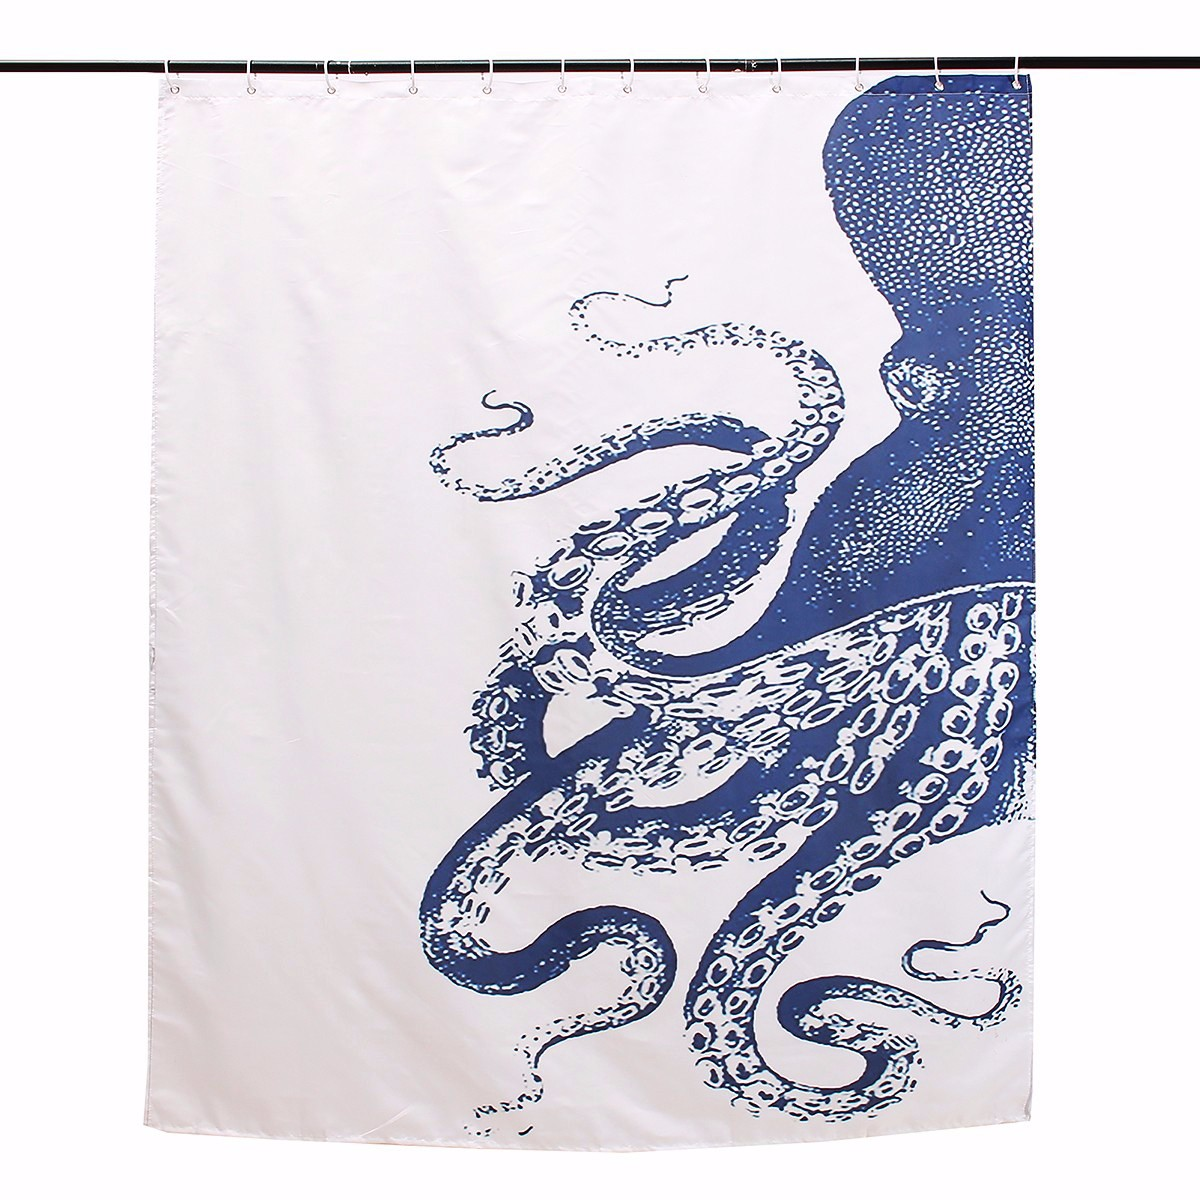 150x180cm Waterproof Halloween Octopus Polyester Shower Curtain Bathroom Decor with 12 Hooks